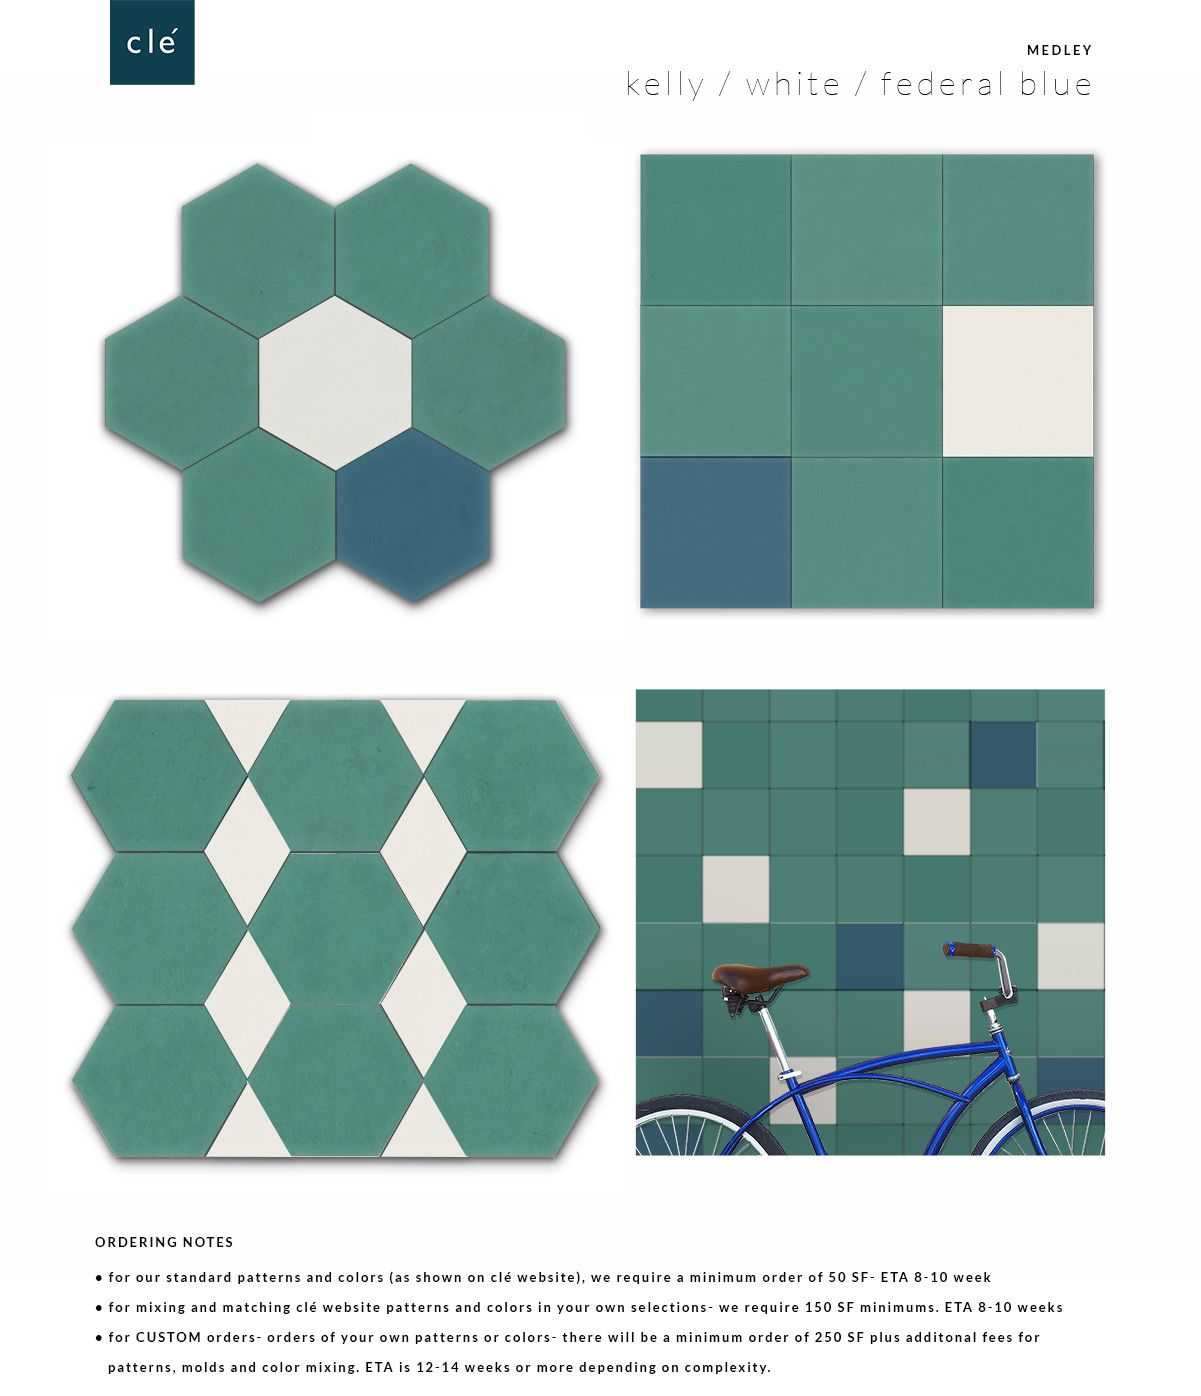 cement tile kelly green white federal blue medley | webster ...